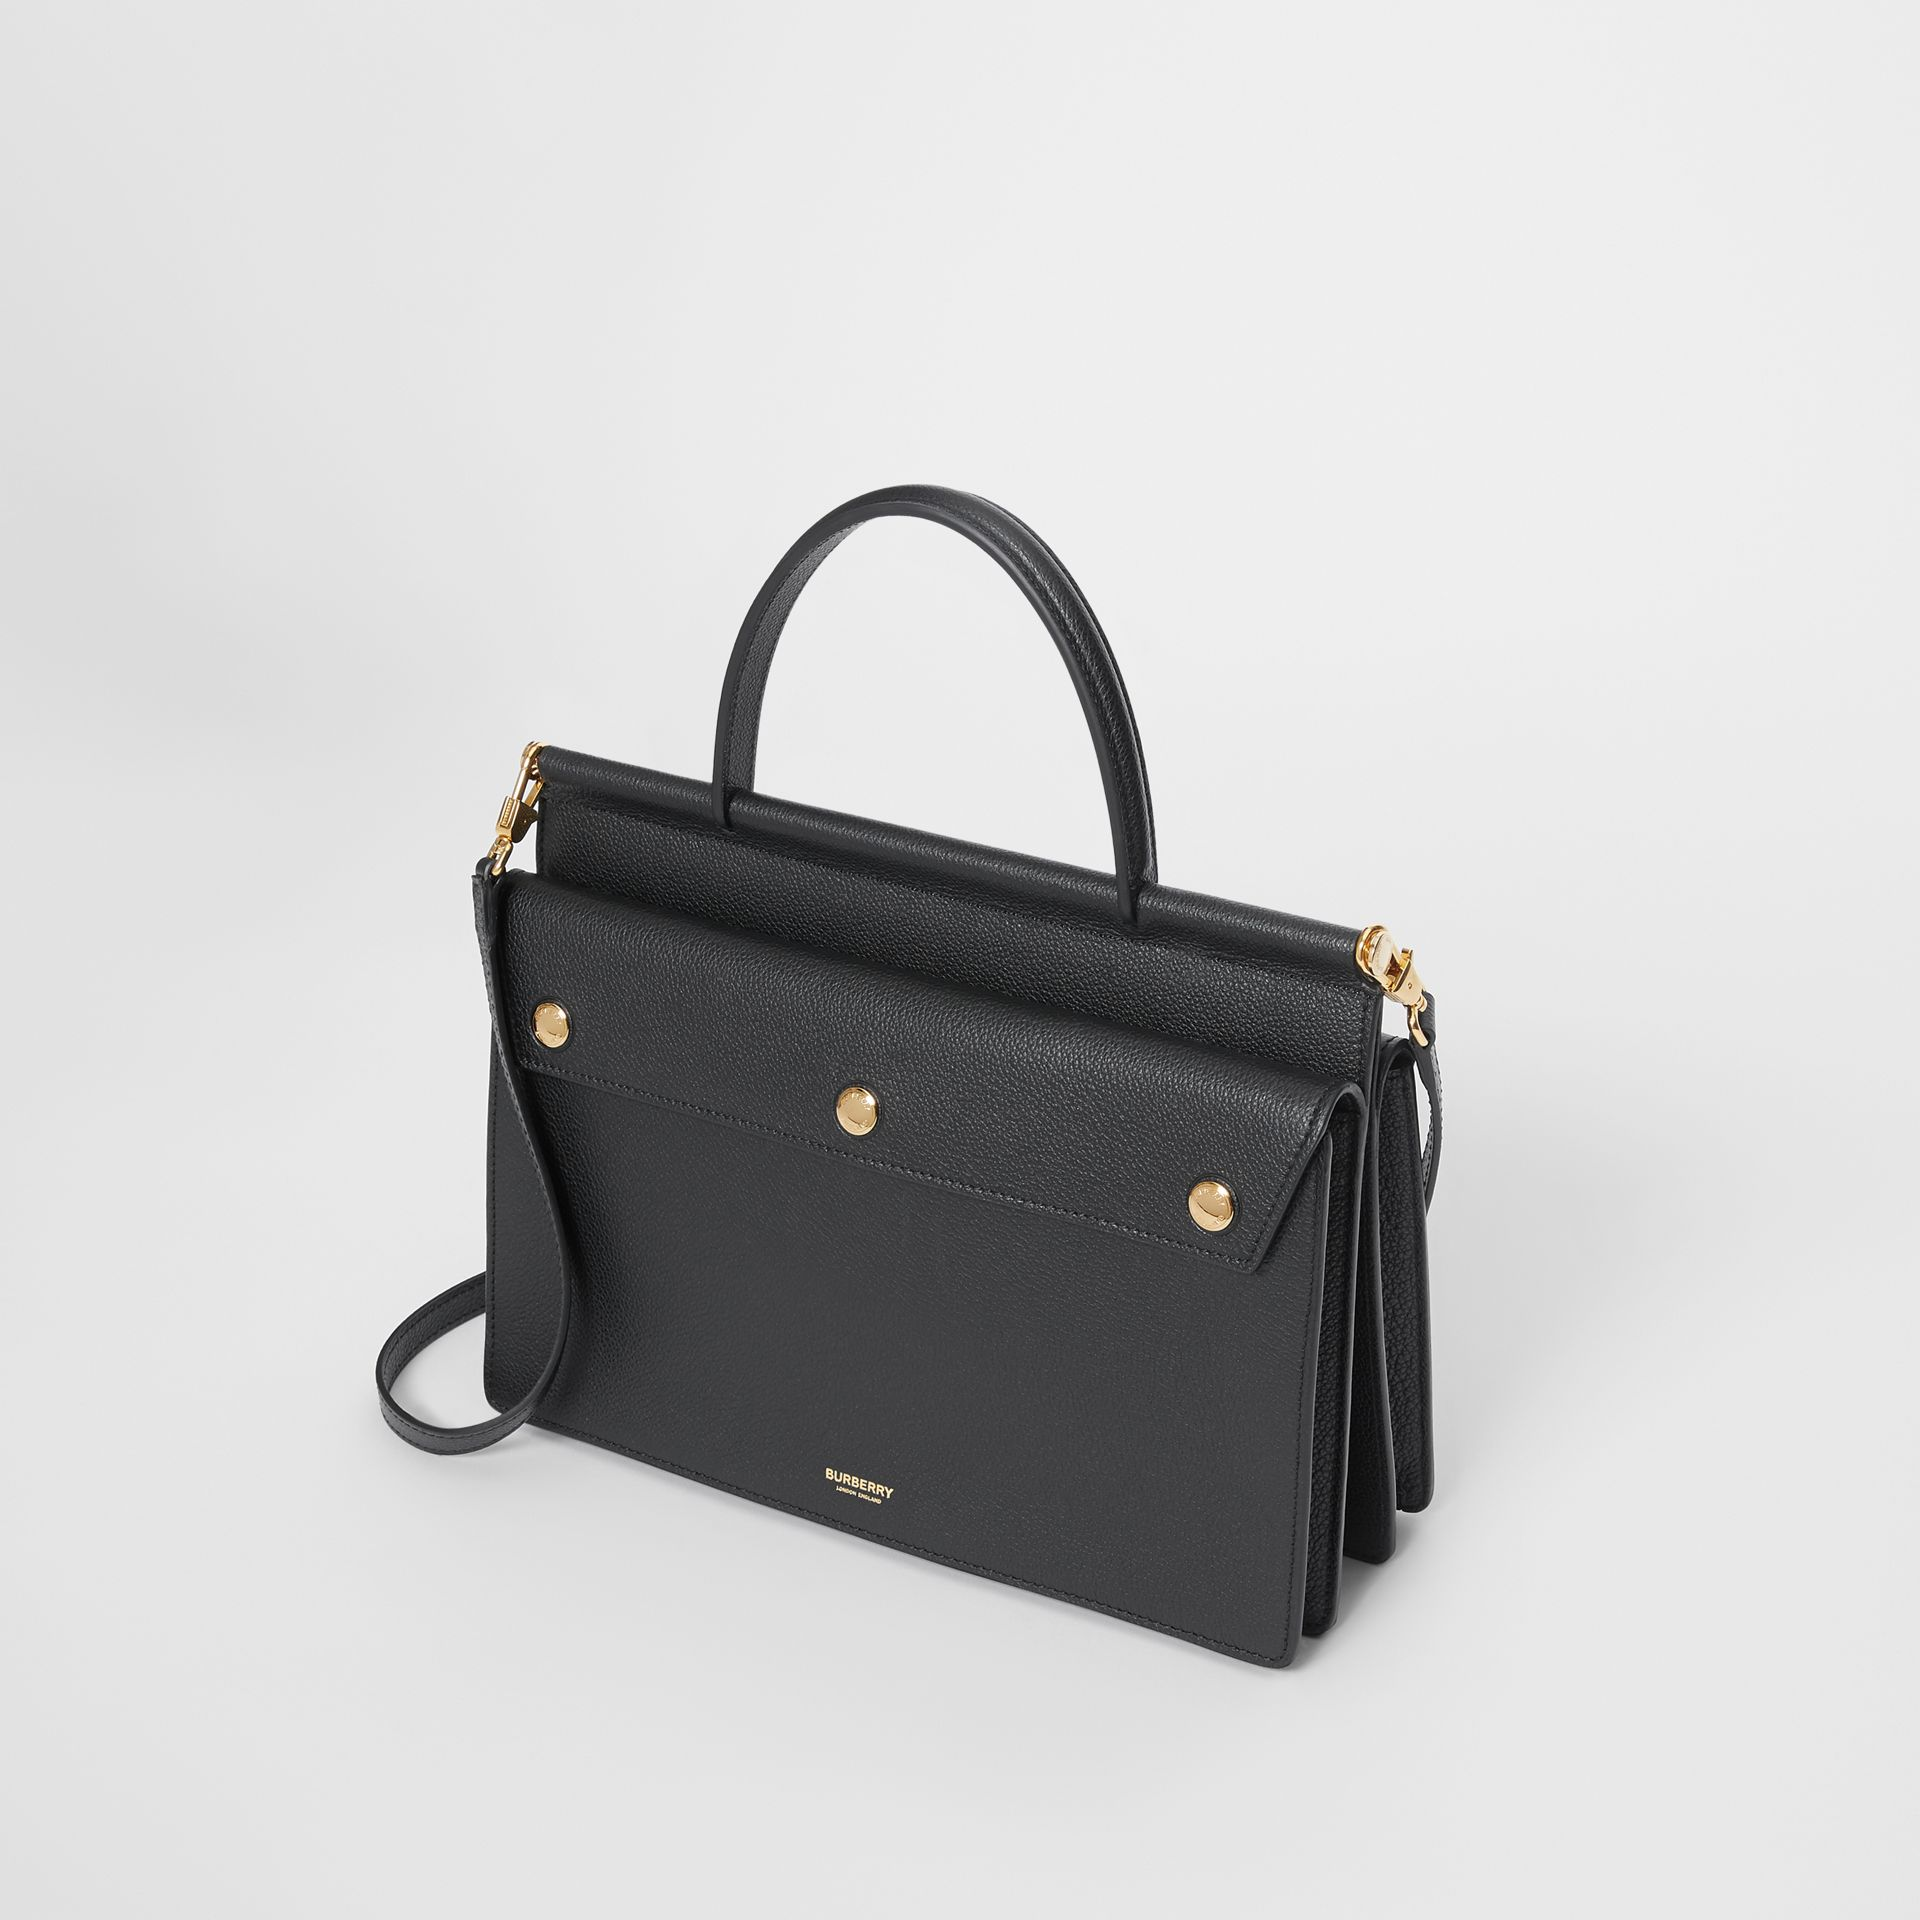 Small Leather Title Bag with Pocket Detail in Black - Women | Burberry - gallery image 3